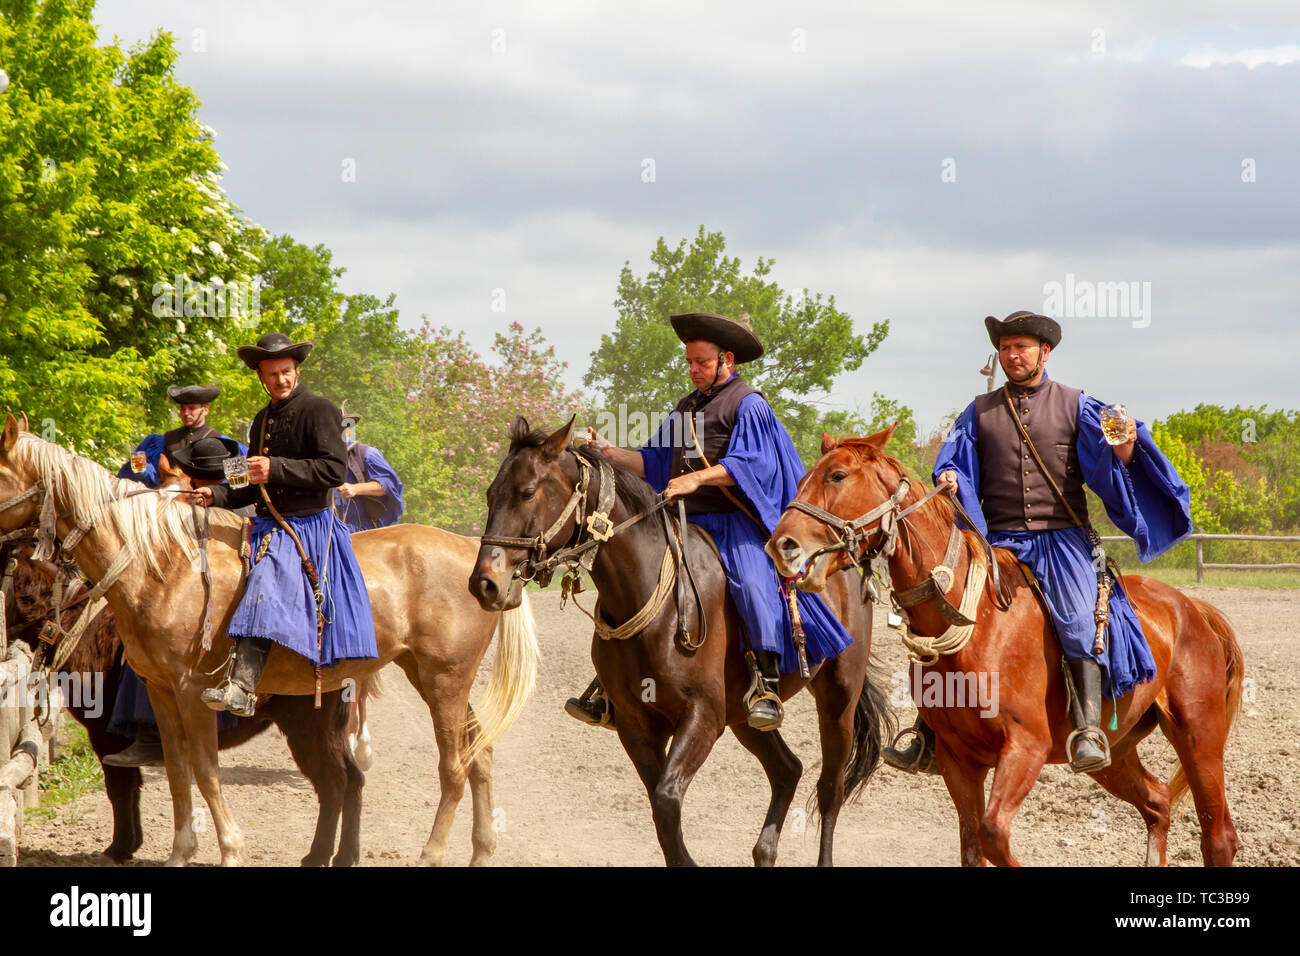 Kalocsa, Puszta, Hungary - May 23, 2019 : Hungarian Csikos horsemen displaying riding skills in traditional costume in countrside corral. Stock Photo